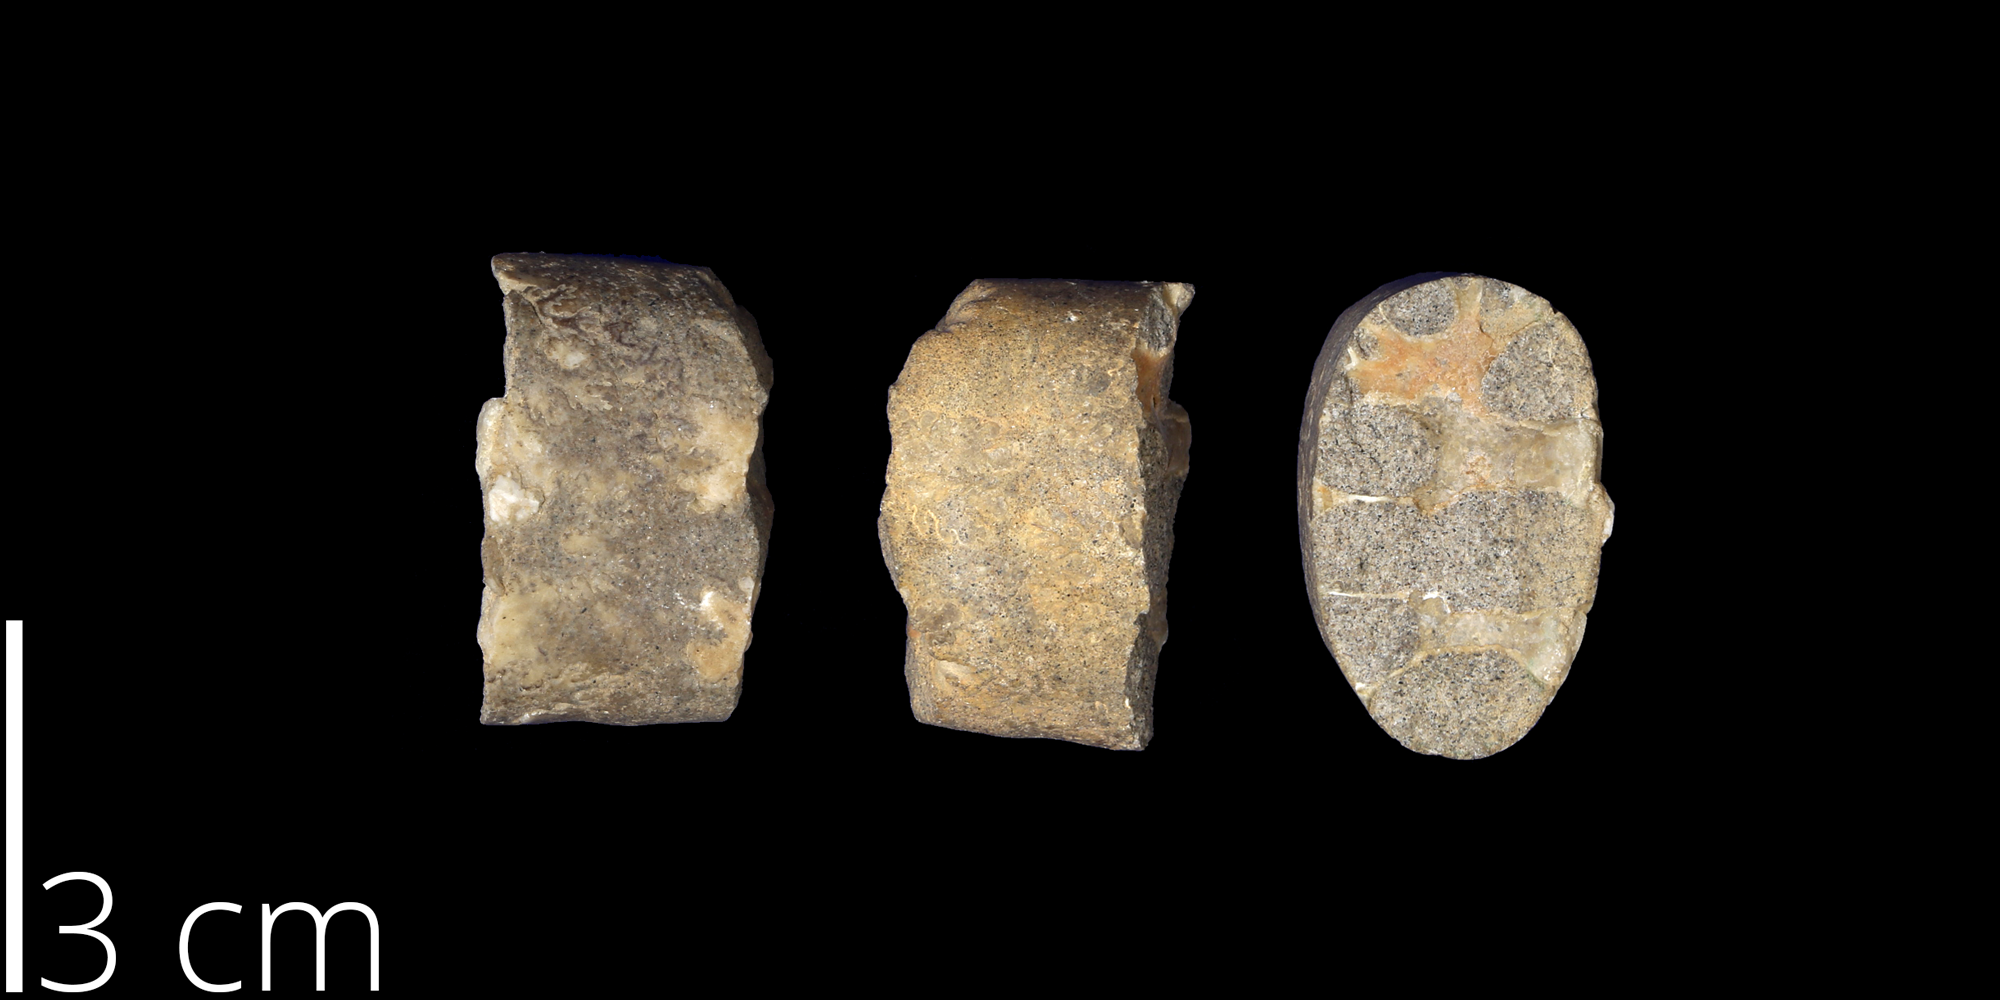 <i> Baculites obtusus </i> from the Late Cretaceous of New Mexico (UNM 981).